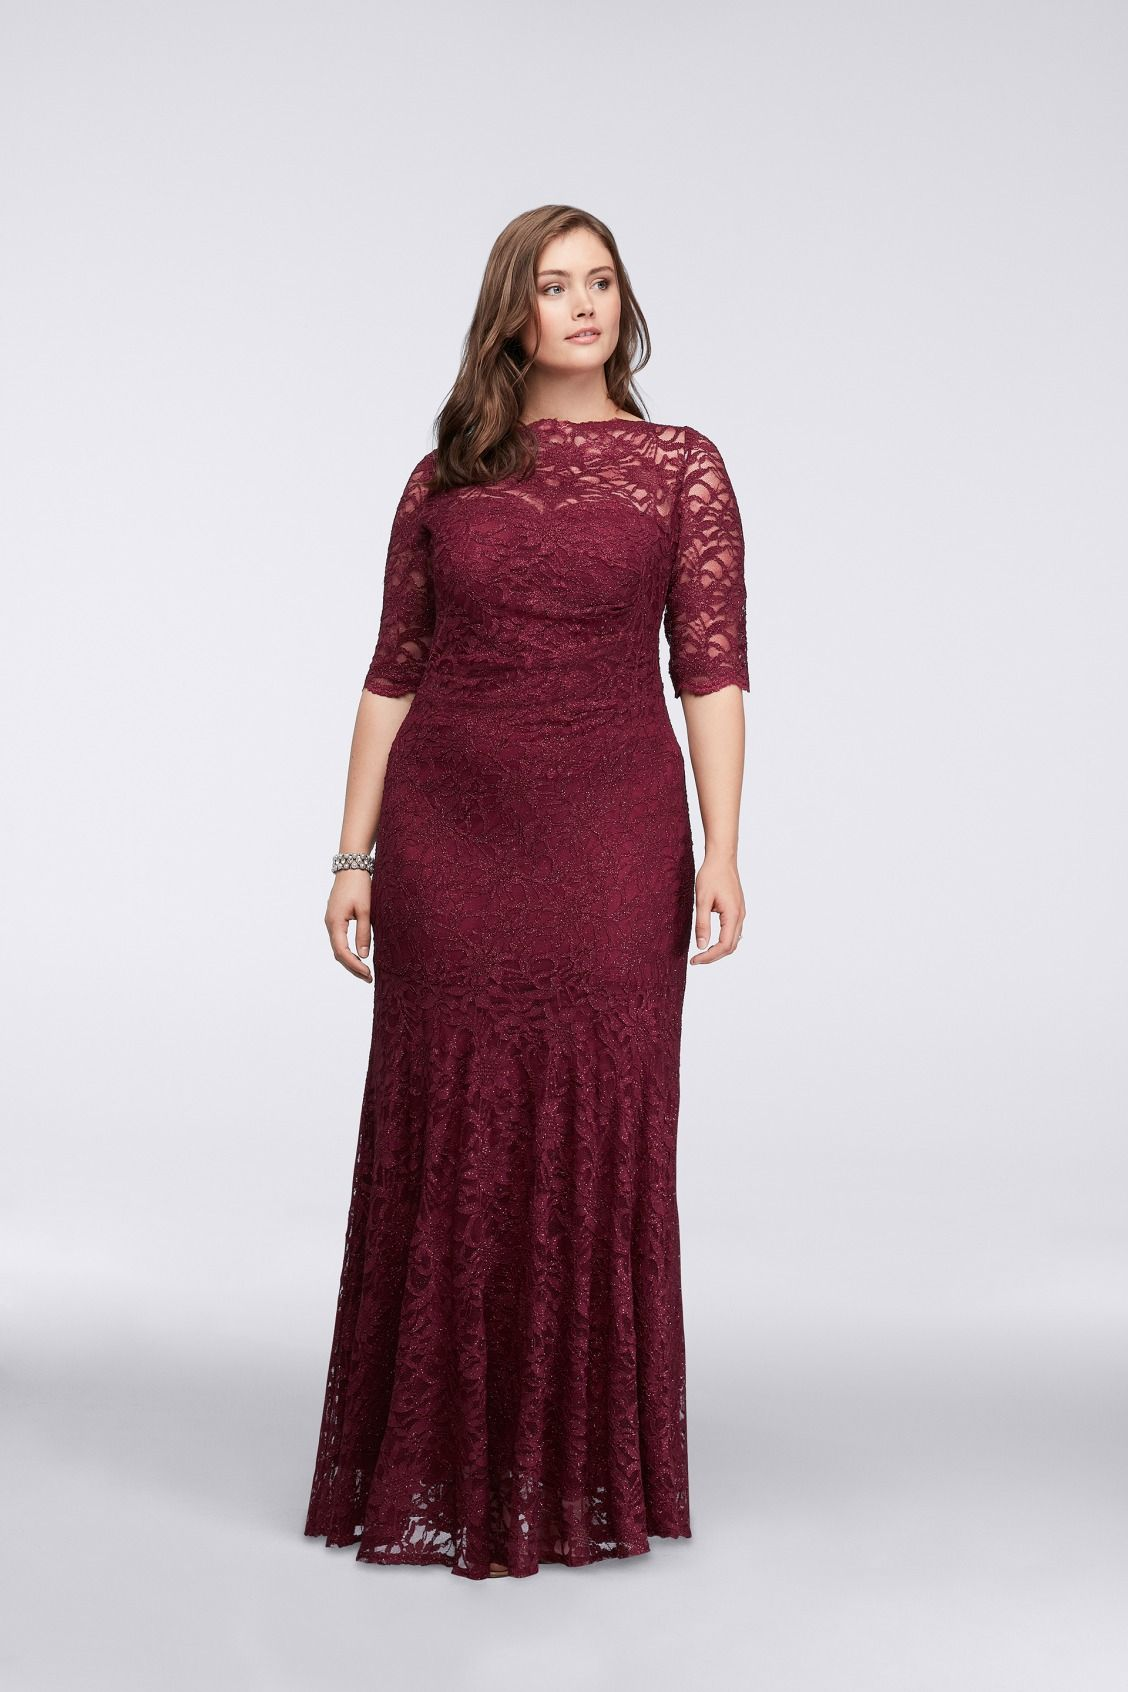 cf60e49bdd4 Long 3 4 Sleeve All Over Glitter Lace Mermaid Burgundy Mother of the Bride  Dress